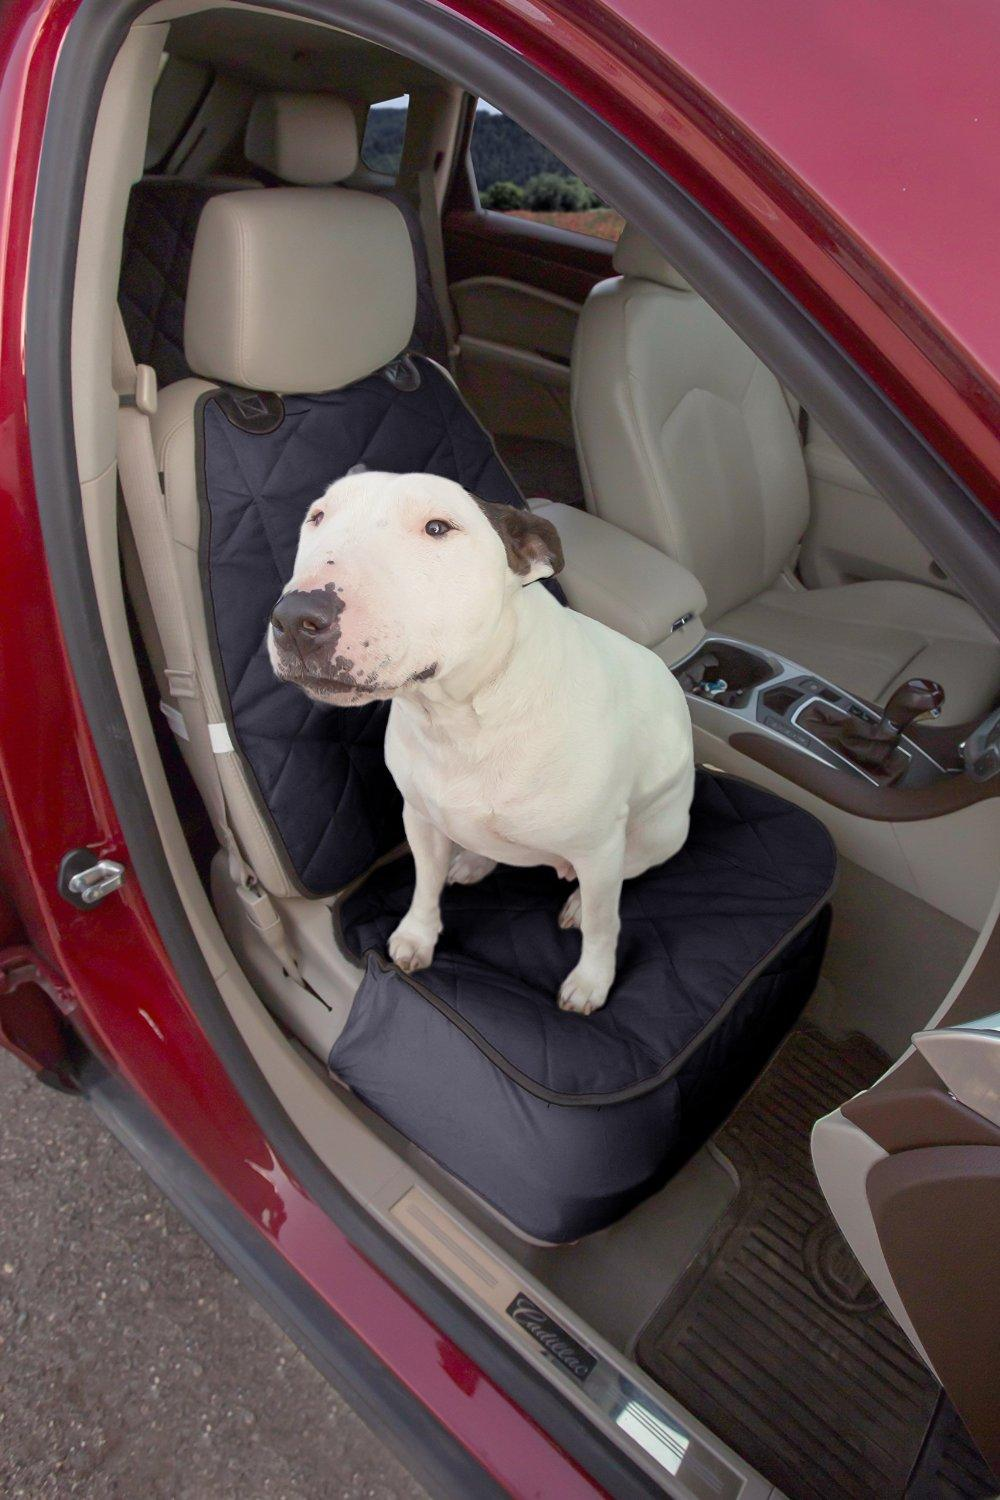 $50.36 Bucket Seat Cover for Your Dog Fits most Cars Trucks and SUVs